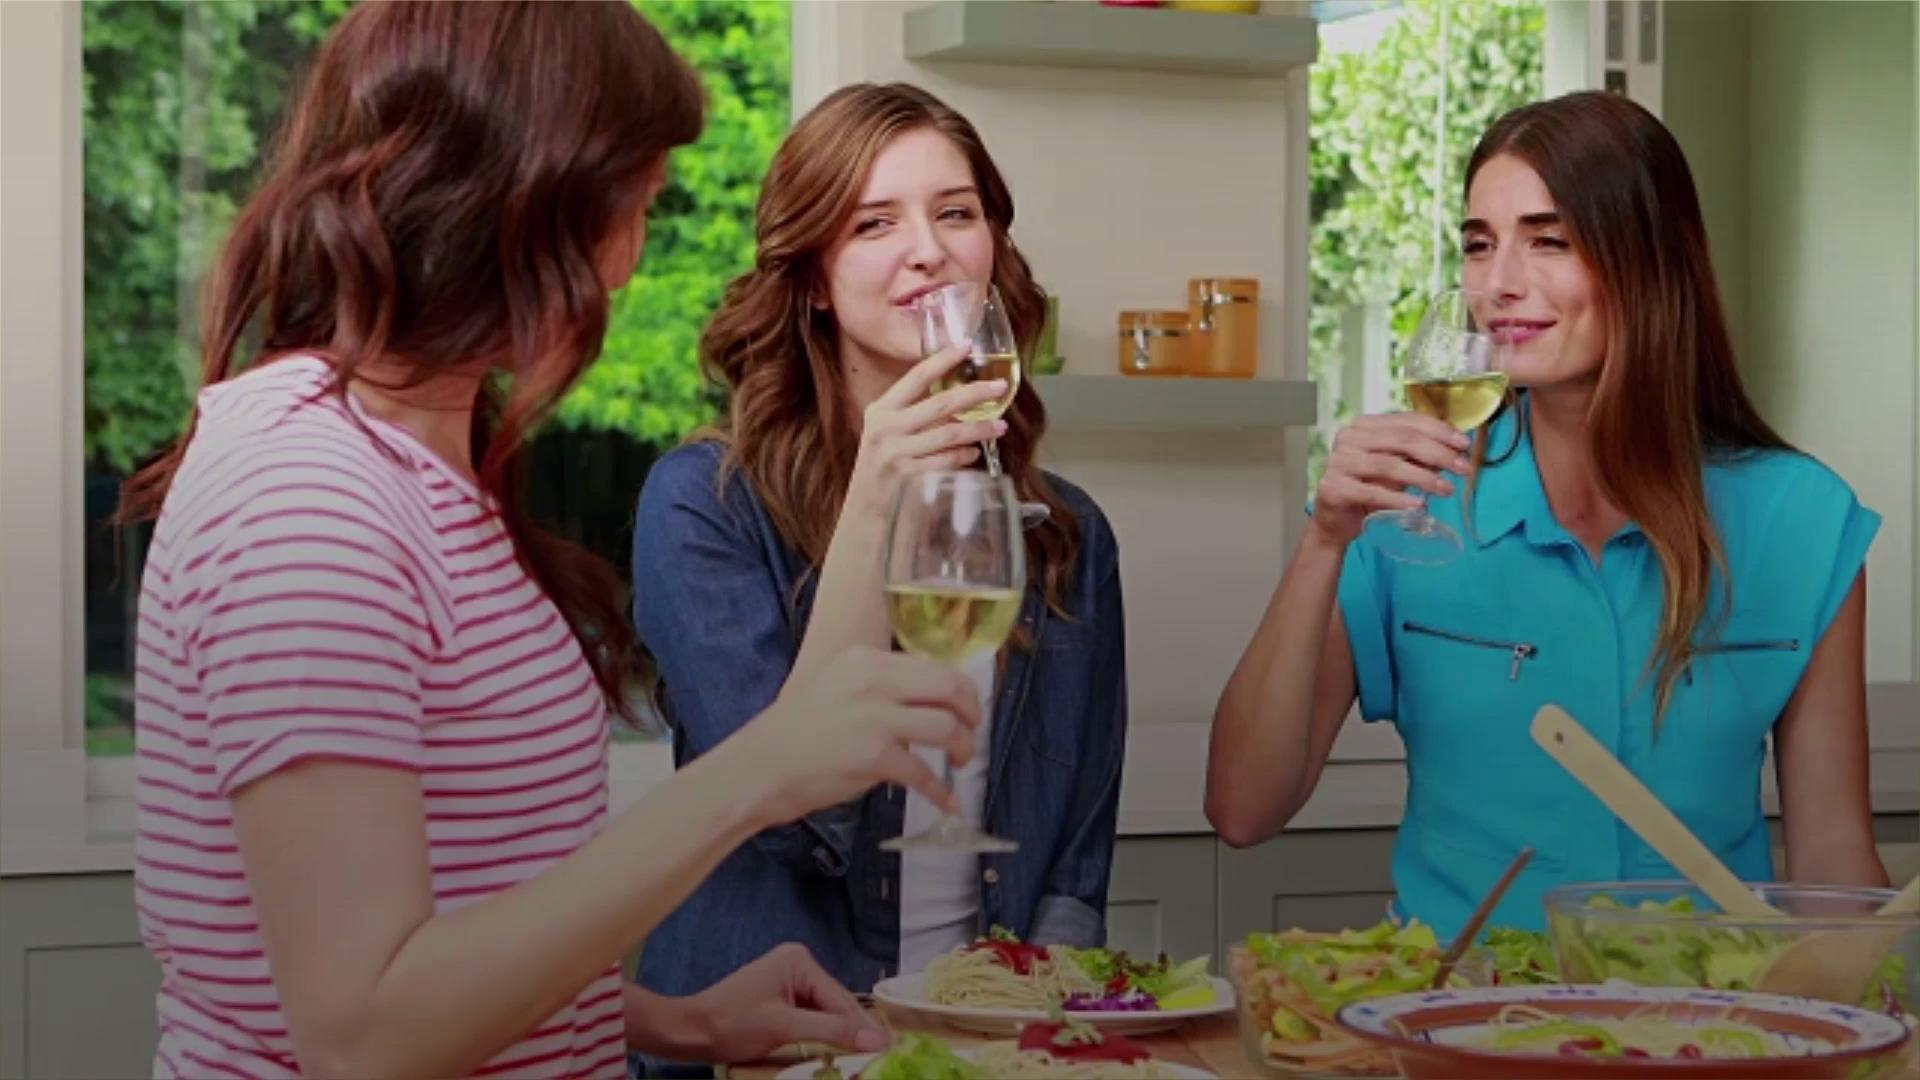 We Tried Every Boxed Pinot Grigio We Could Find and This Was the Best